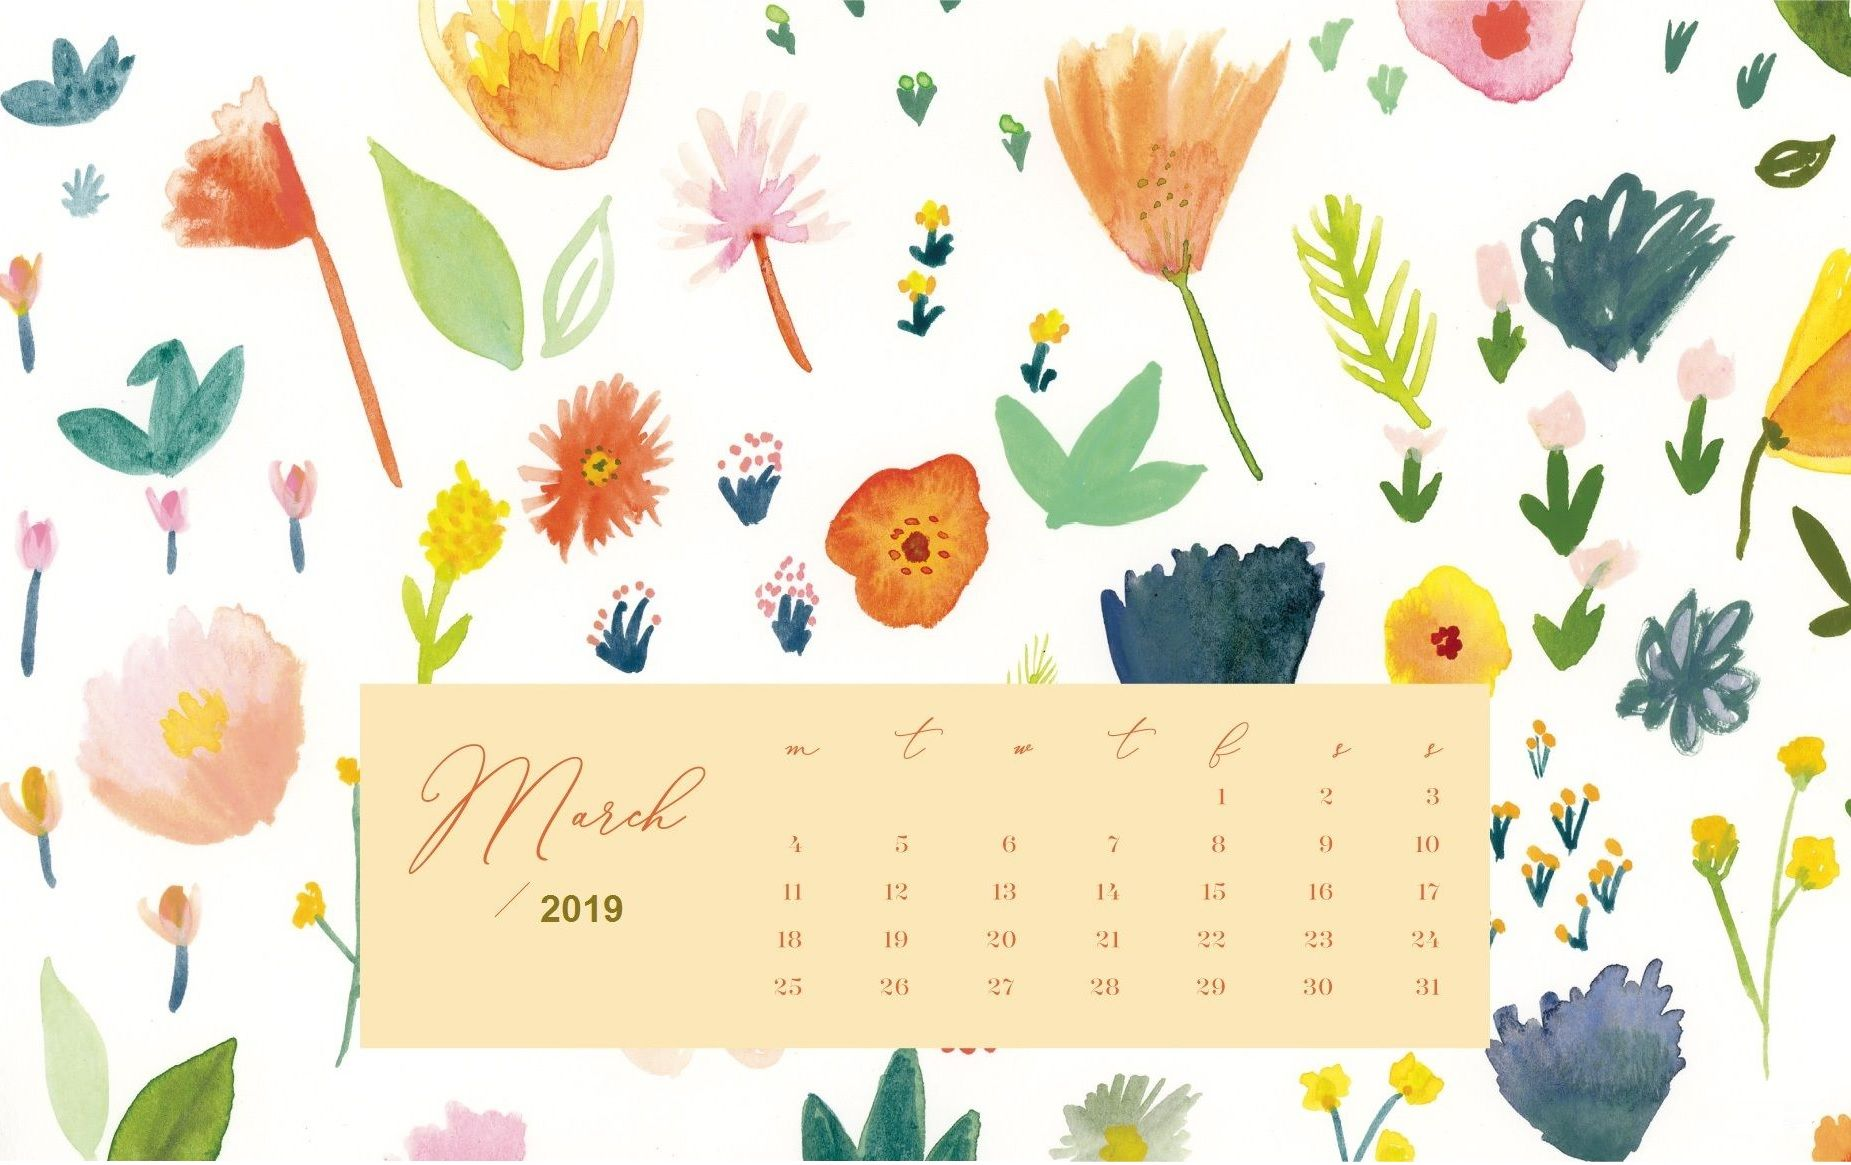 March 2019 Background Screensaver Calendar Wallpaper Desktop Wallpaper Calendar Floral Wallpaper